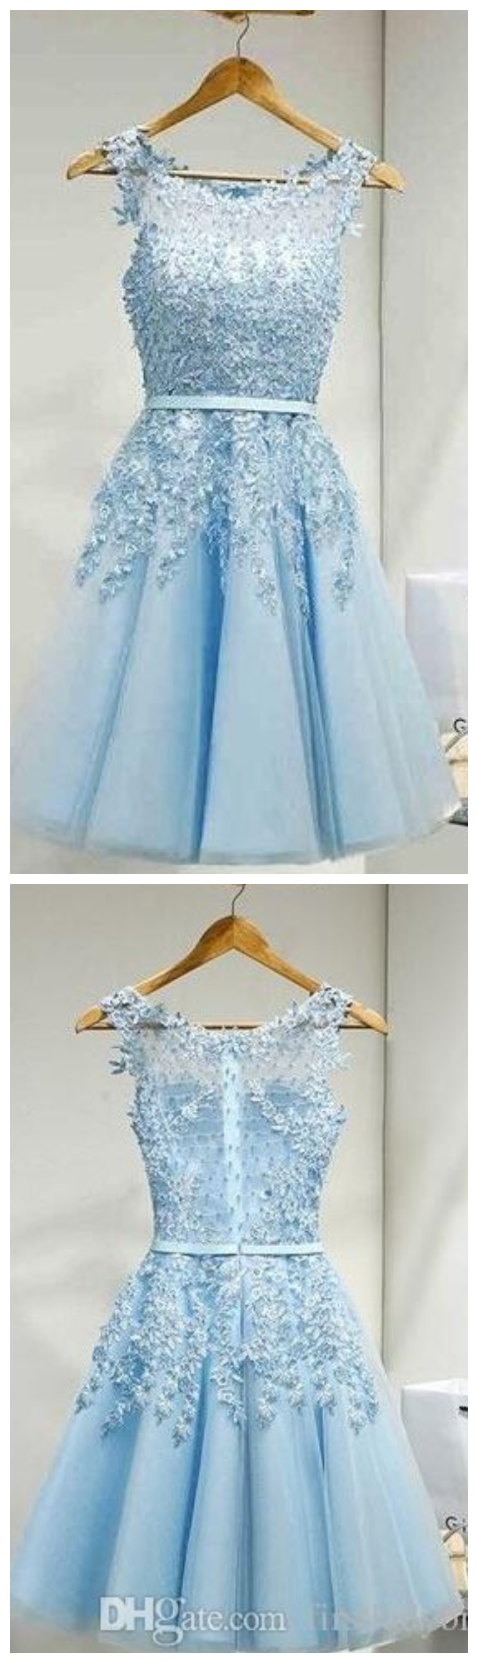 Light sky blue short homecoming party dresses appliques lace real